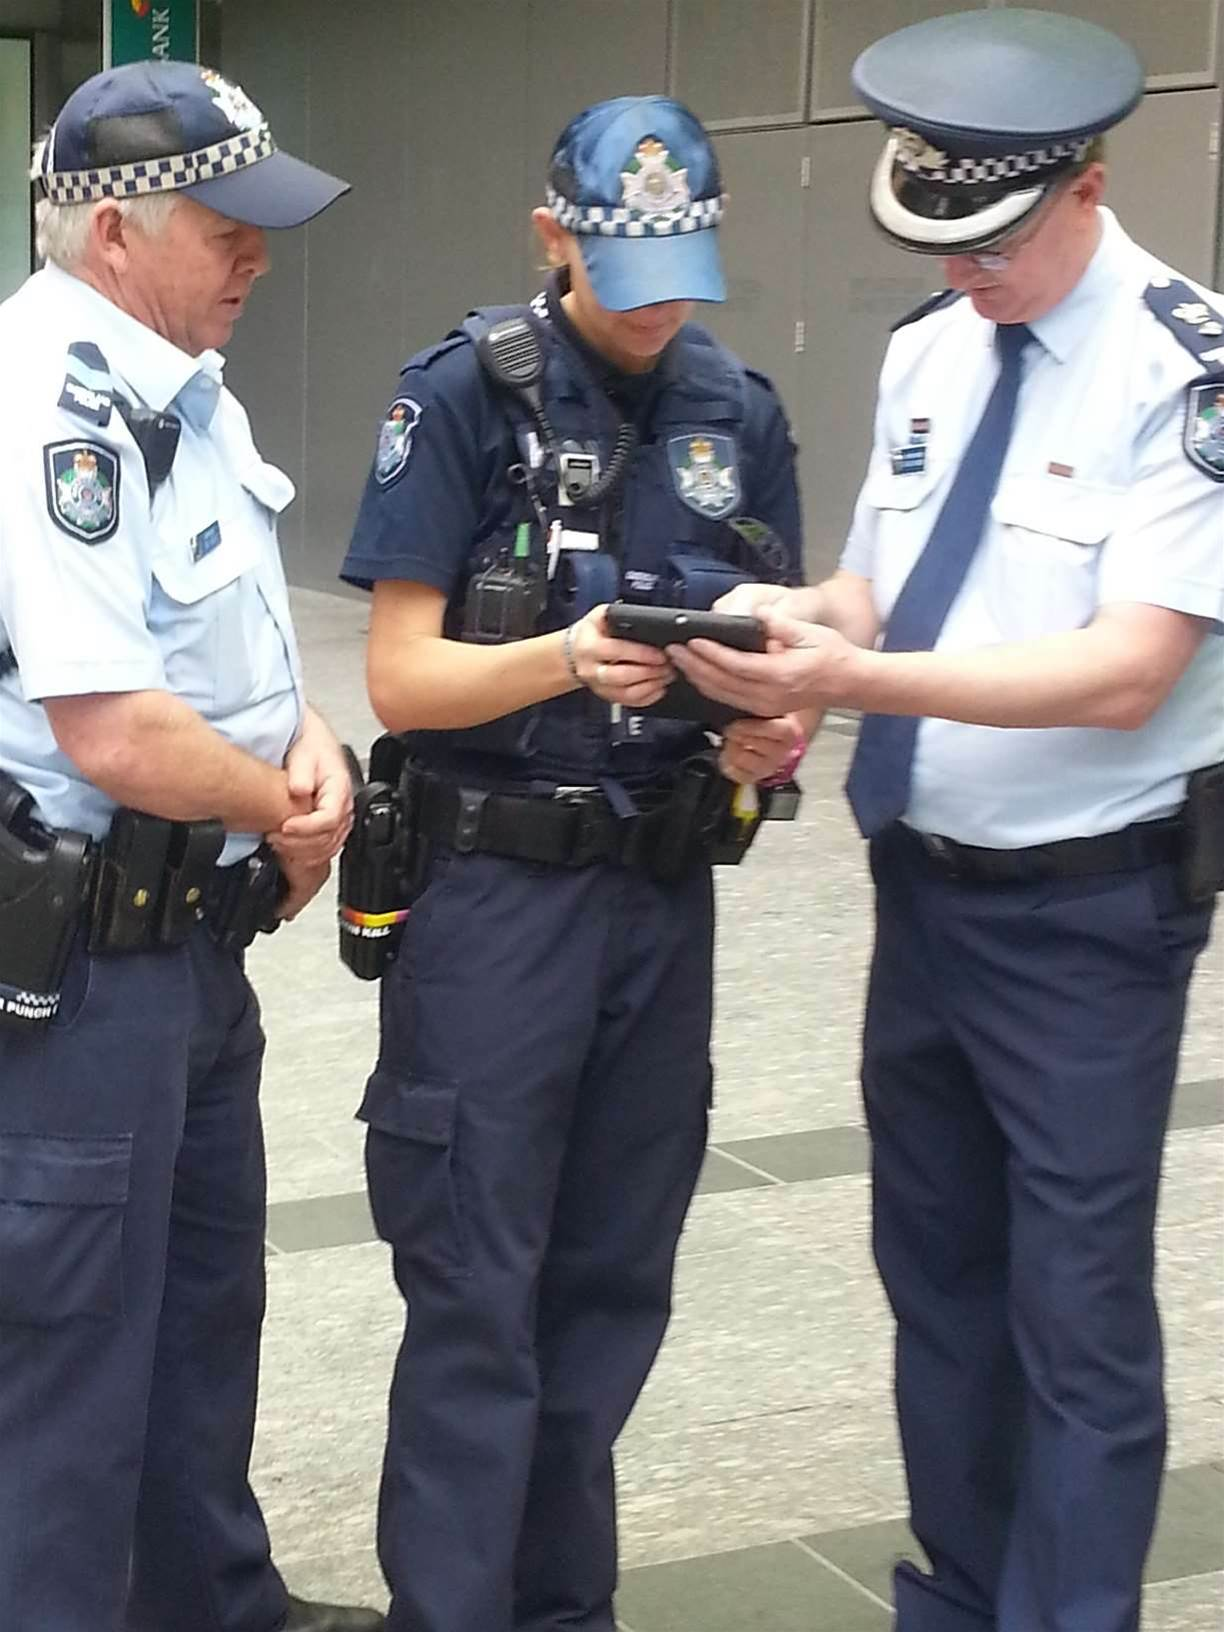 Qld Police expands mobility trial